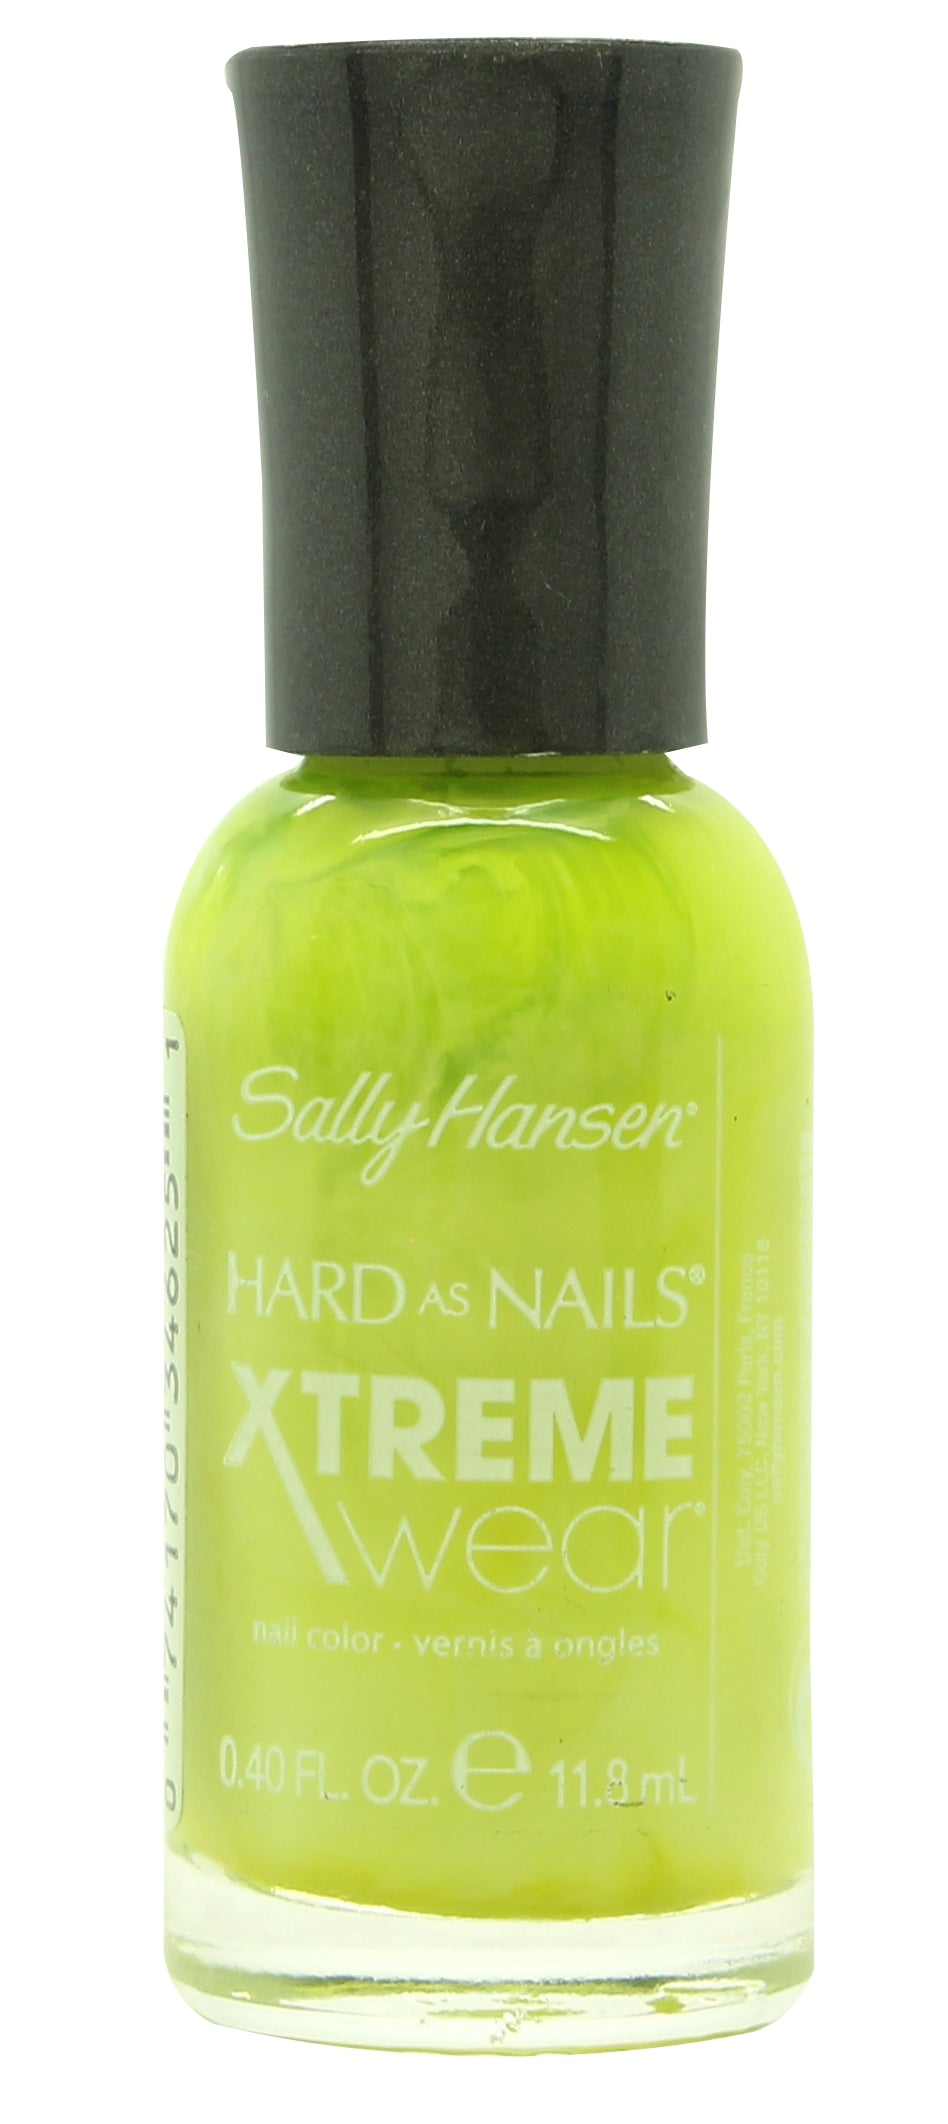 Sally Hansen Hard As Nails Xtreme Wear Nail Color 11.8ml -  110 Green With Envy